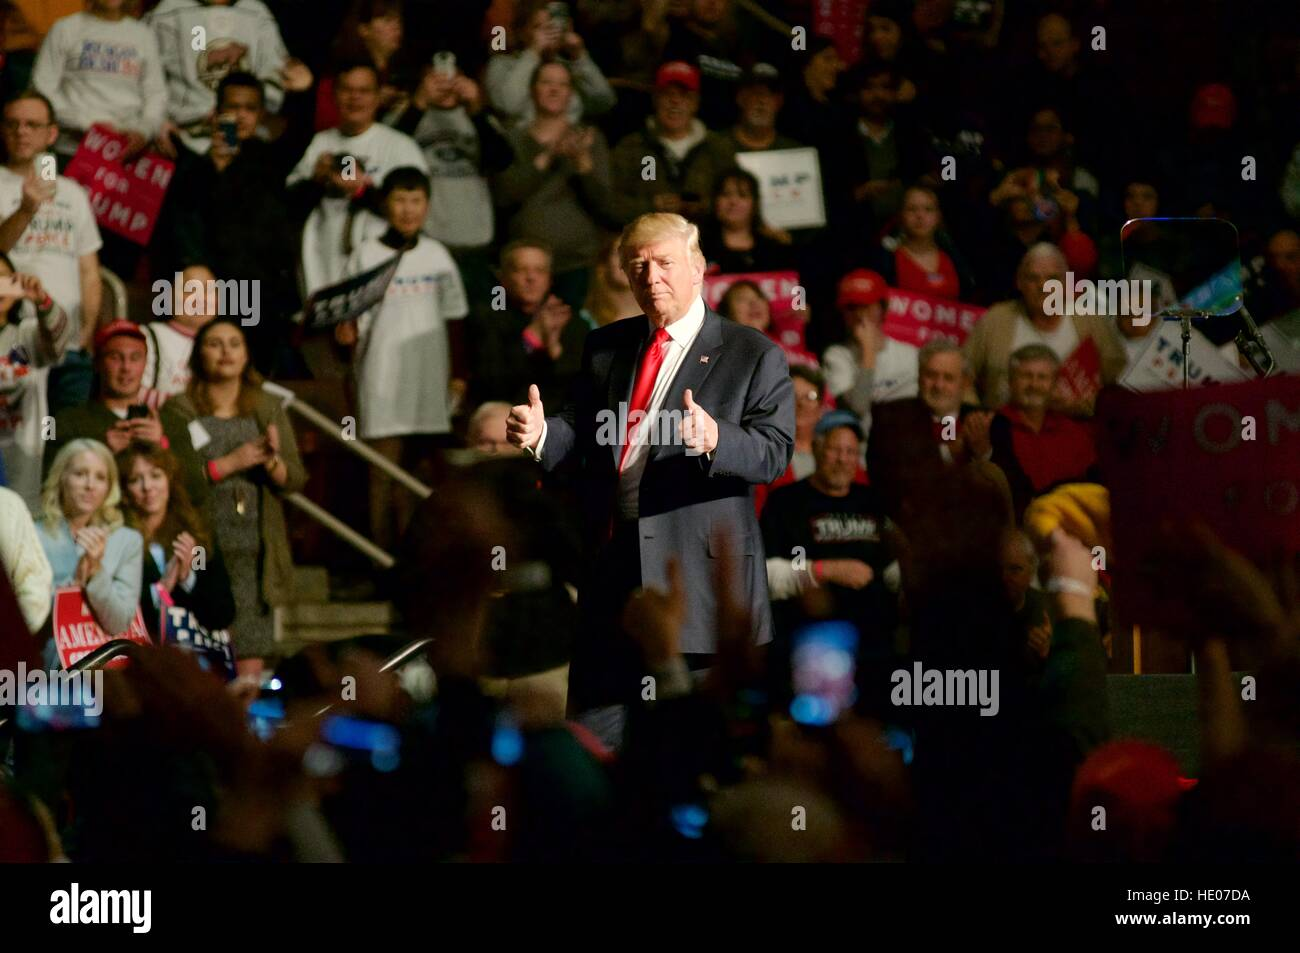 Hershey, Pennsyvlania, USA. 15th Dec, 2016. President-Elect Donald Trump greets supporters as he exits after appearing - Stock Image